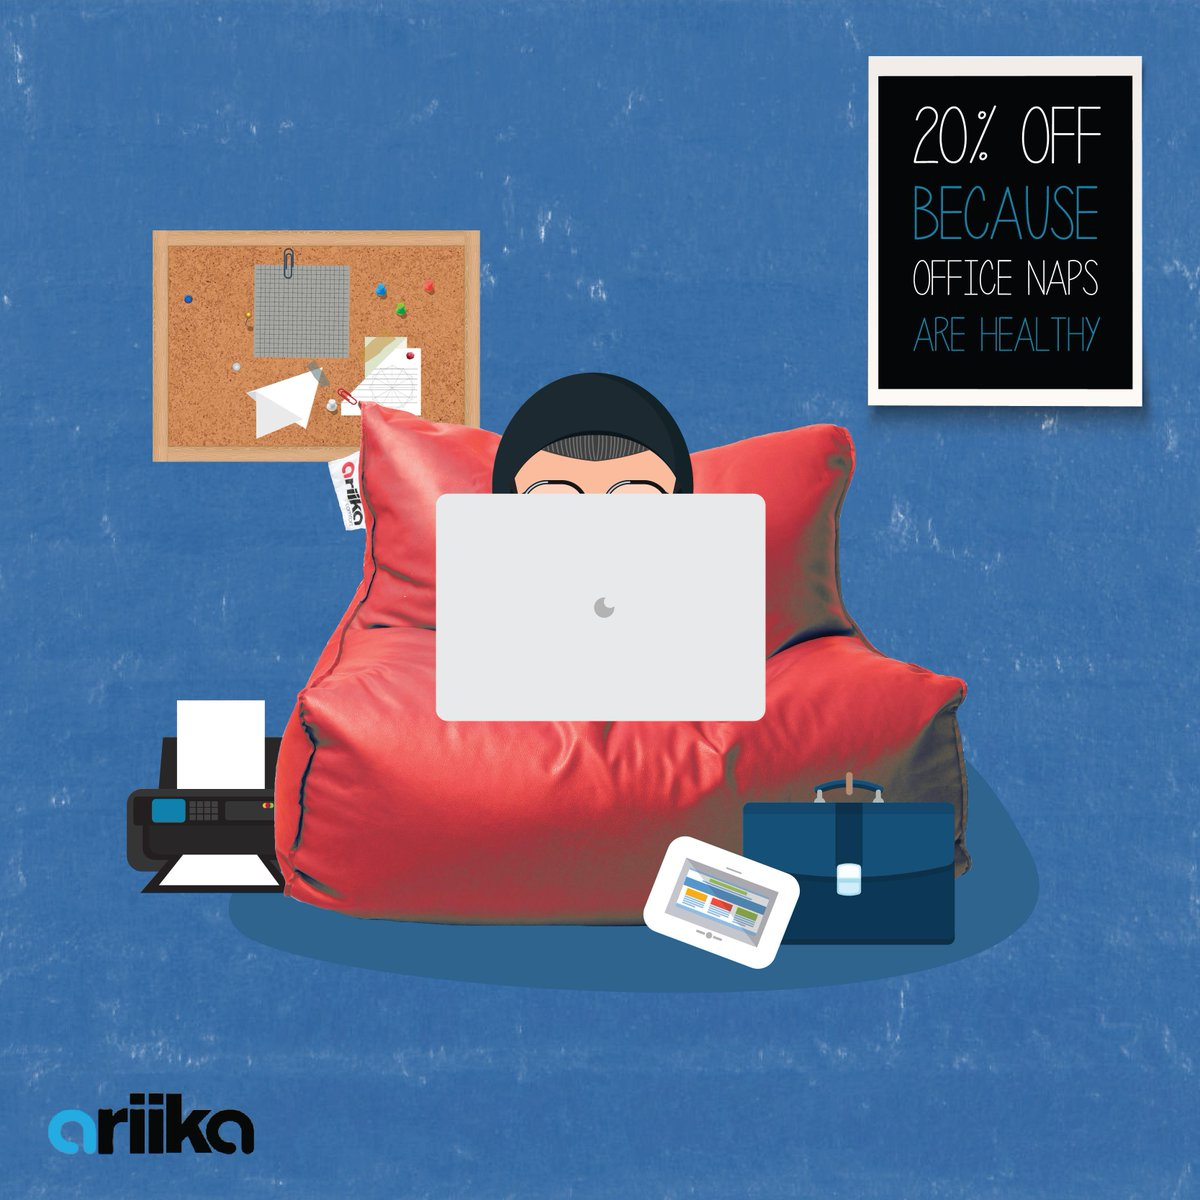 Napping in the office is  genius. Get back into work mode with our 20% discount on everything ariika. http://t.co/3I4h4tyuV1